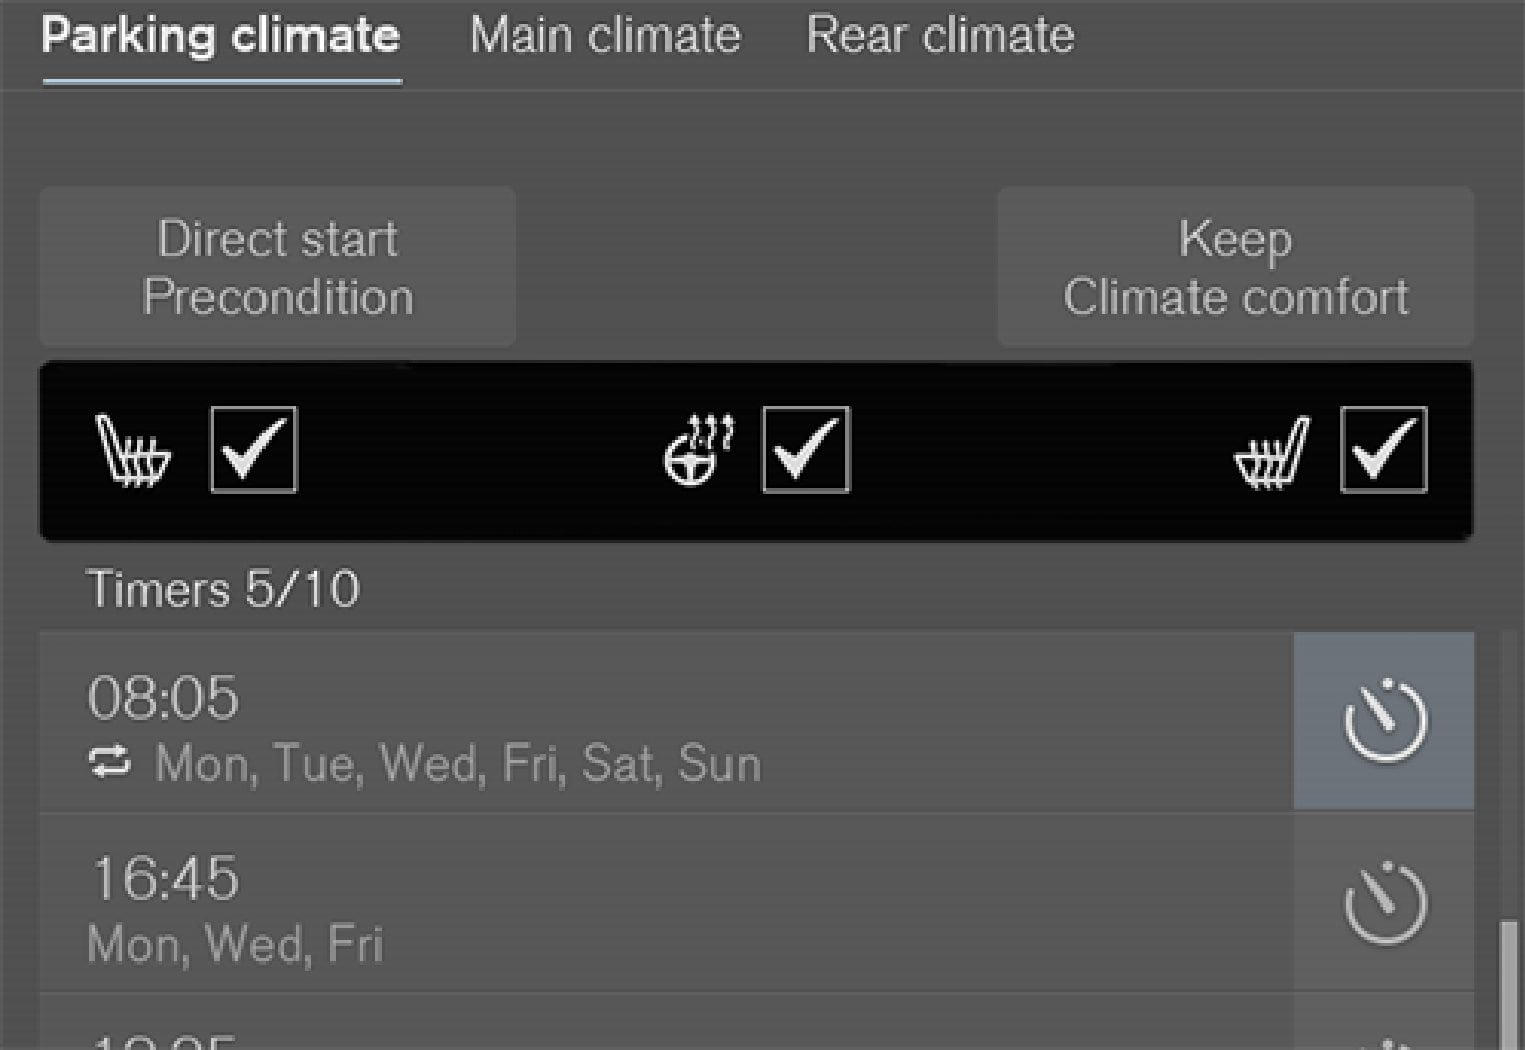 Boxes for seat heating and steering wheel heating in the Parking climate  tab in the climate view.